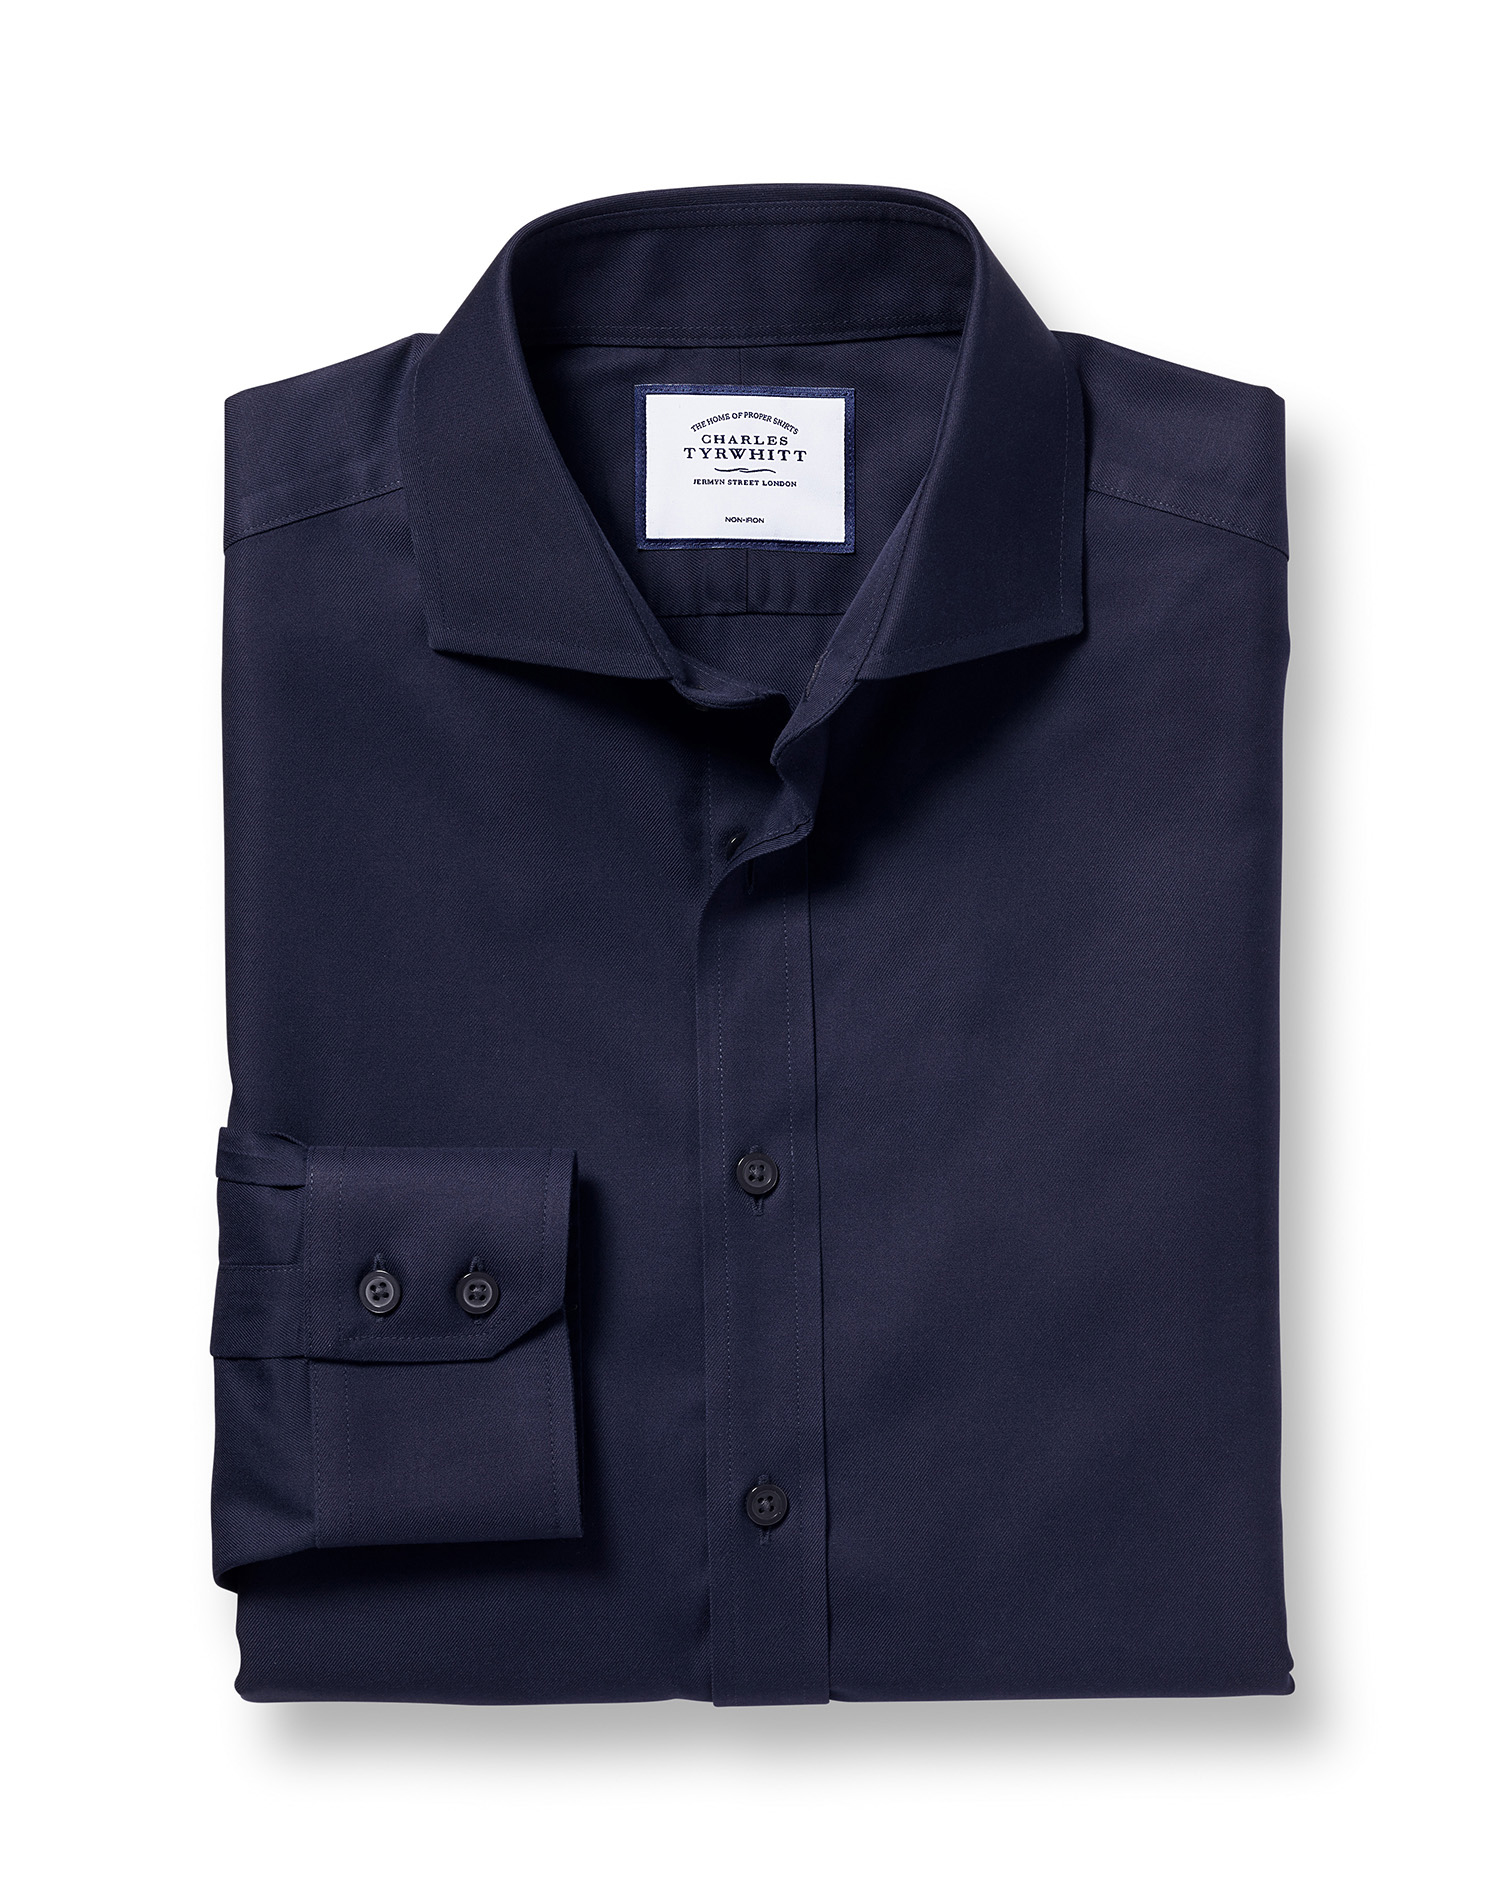 Extra Slim Fit Cutaway Non-Iron Twill Navy Blue Cotton Formal Shirt Single Cuff Size 14.5/32 by Char